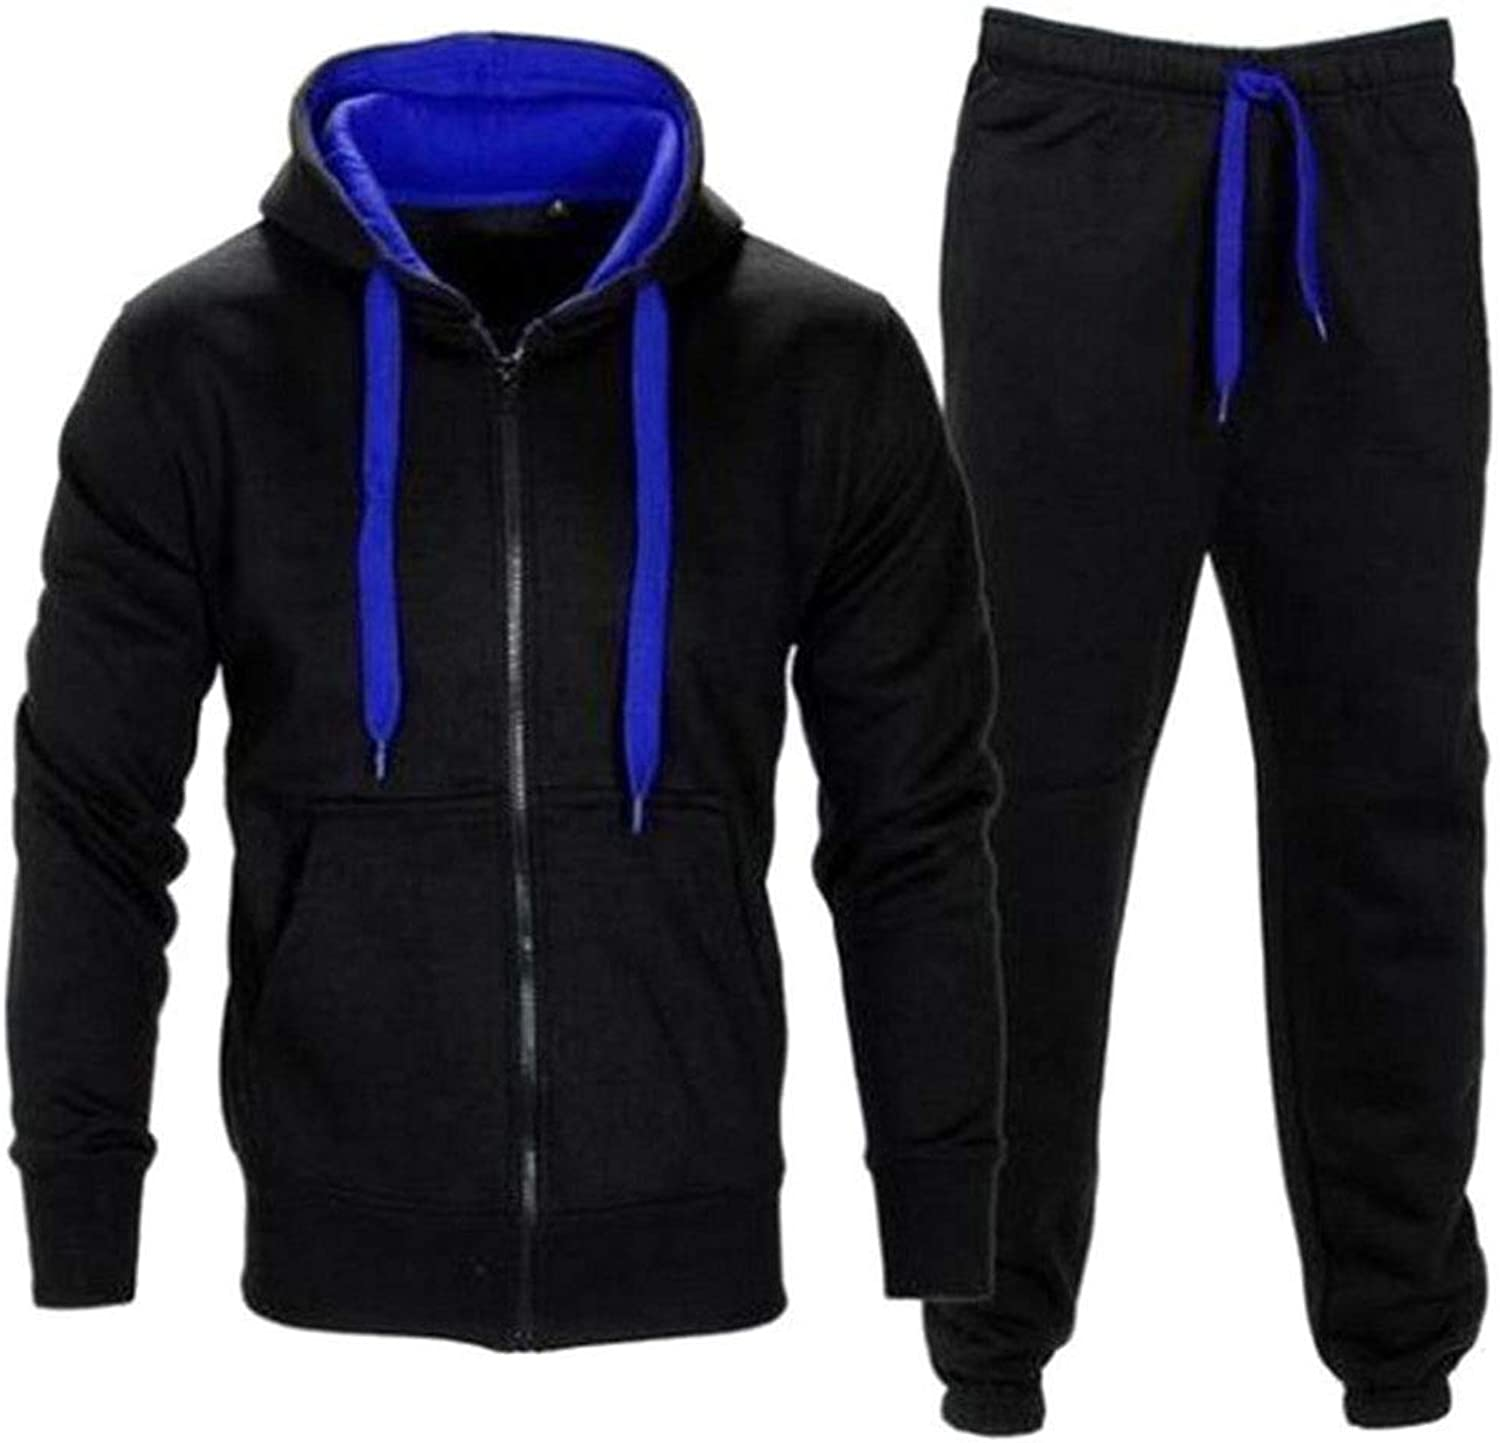 Fashionmy Men's Tracksuits Hoodies 2 Pieces Sweatsuits Hip Hop Sports Outwear Navyred